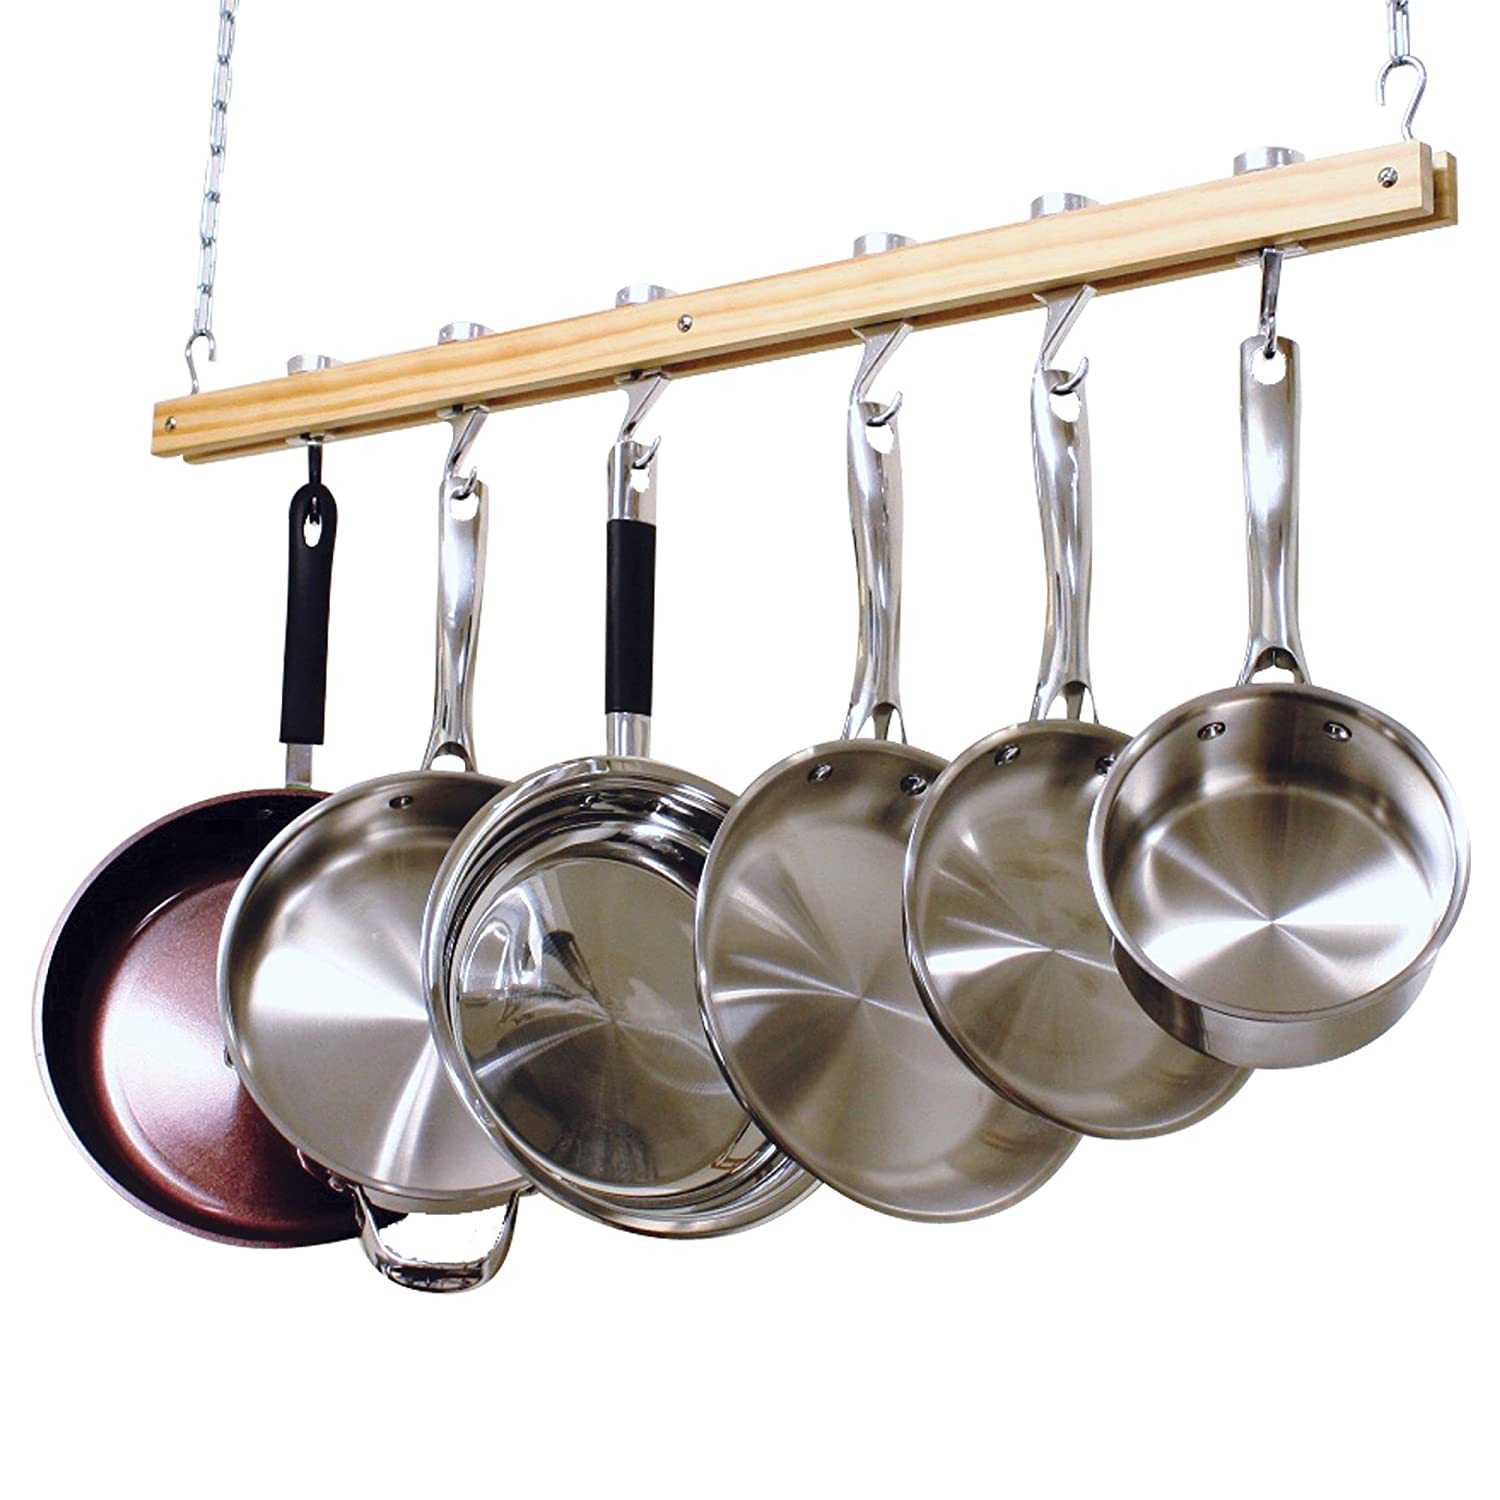 Kitchen Pot Rack Shop Amazoncom Pot Racks